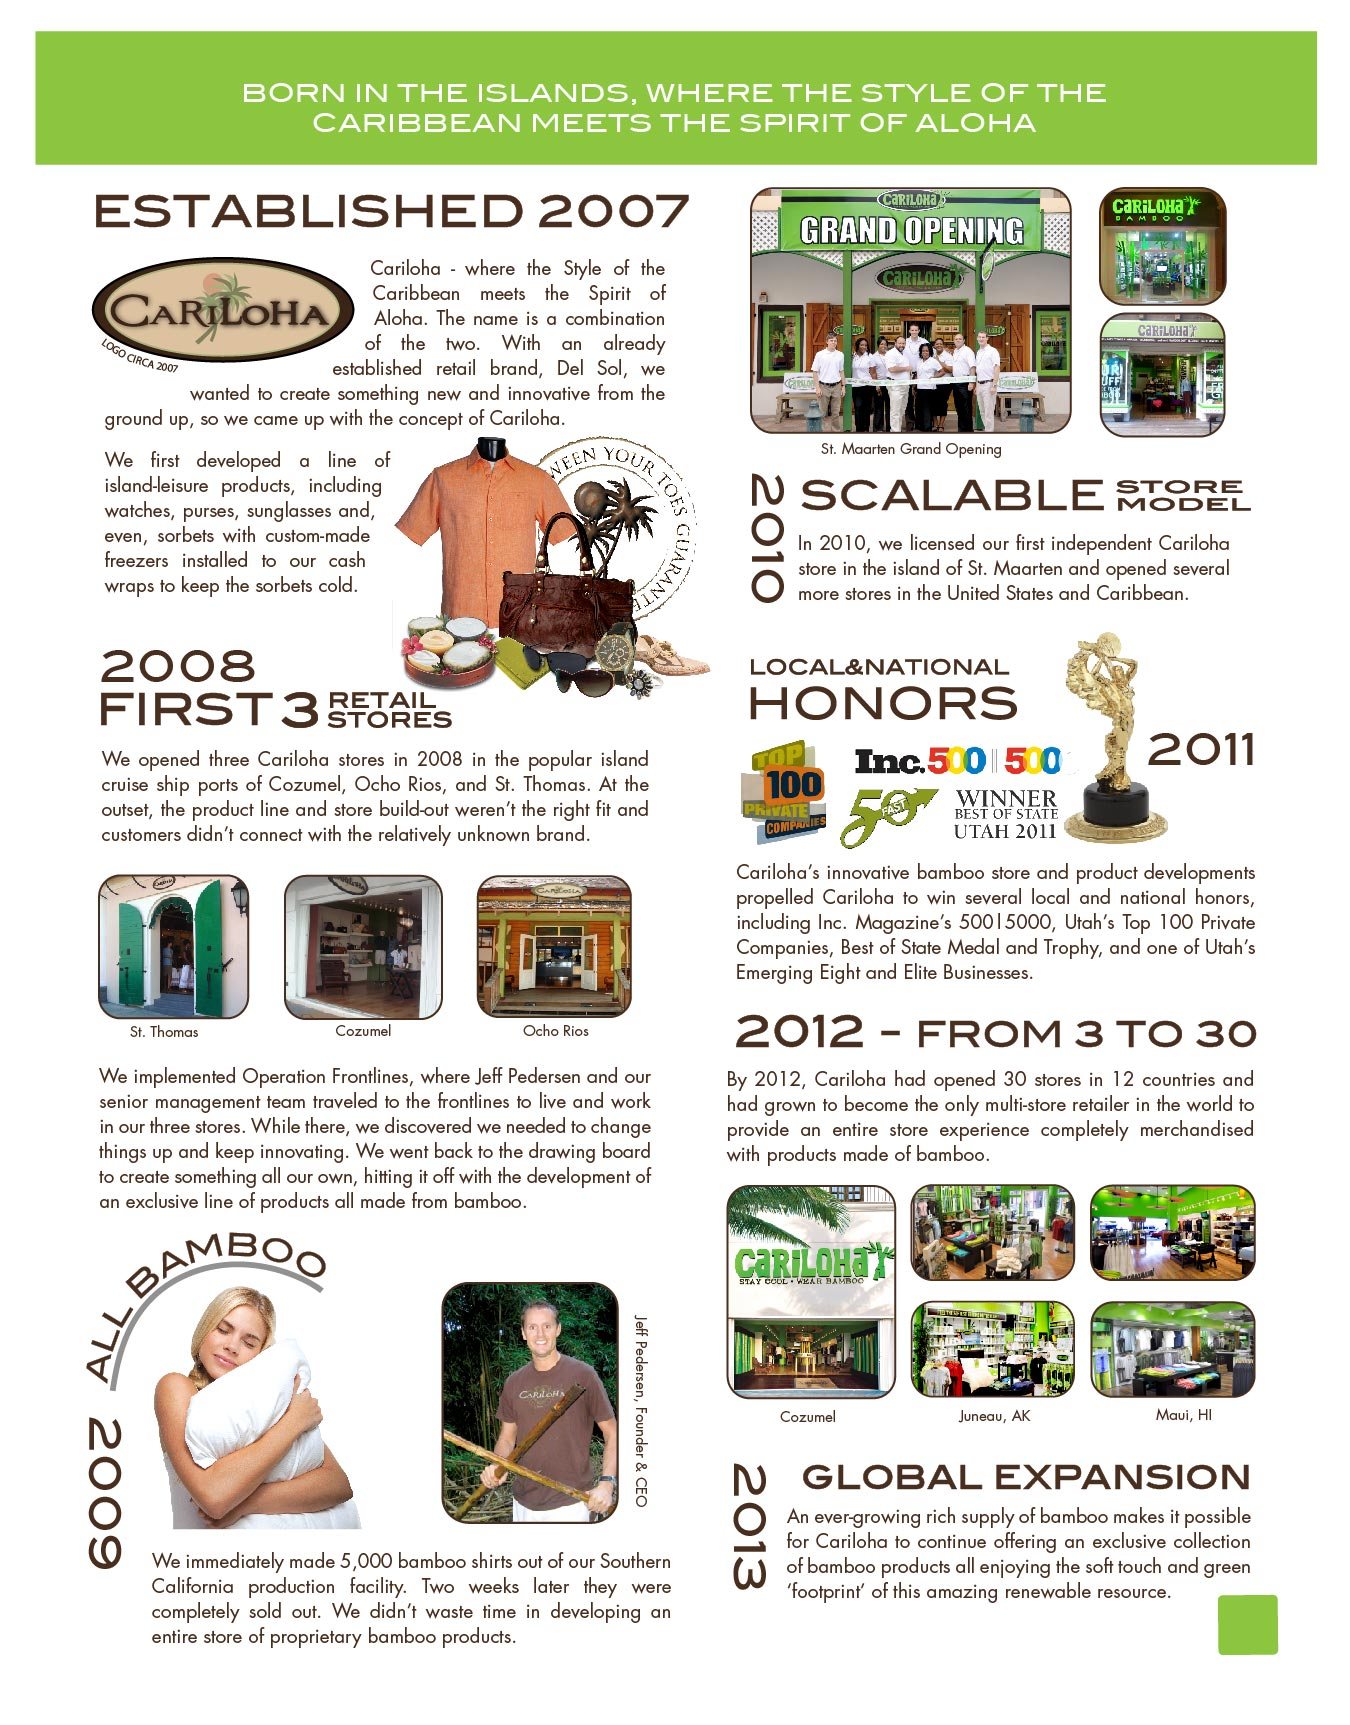 Cariloha History Timeline  2007 - Present